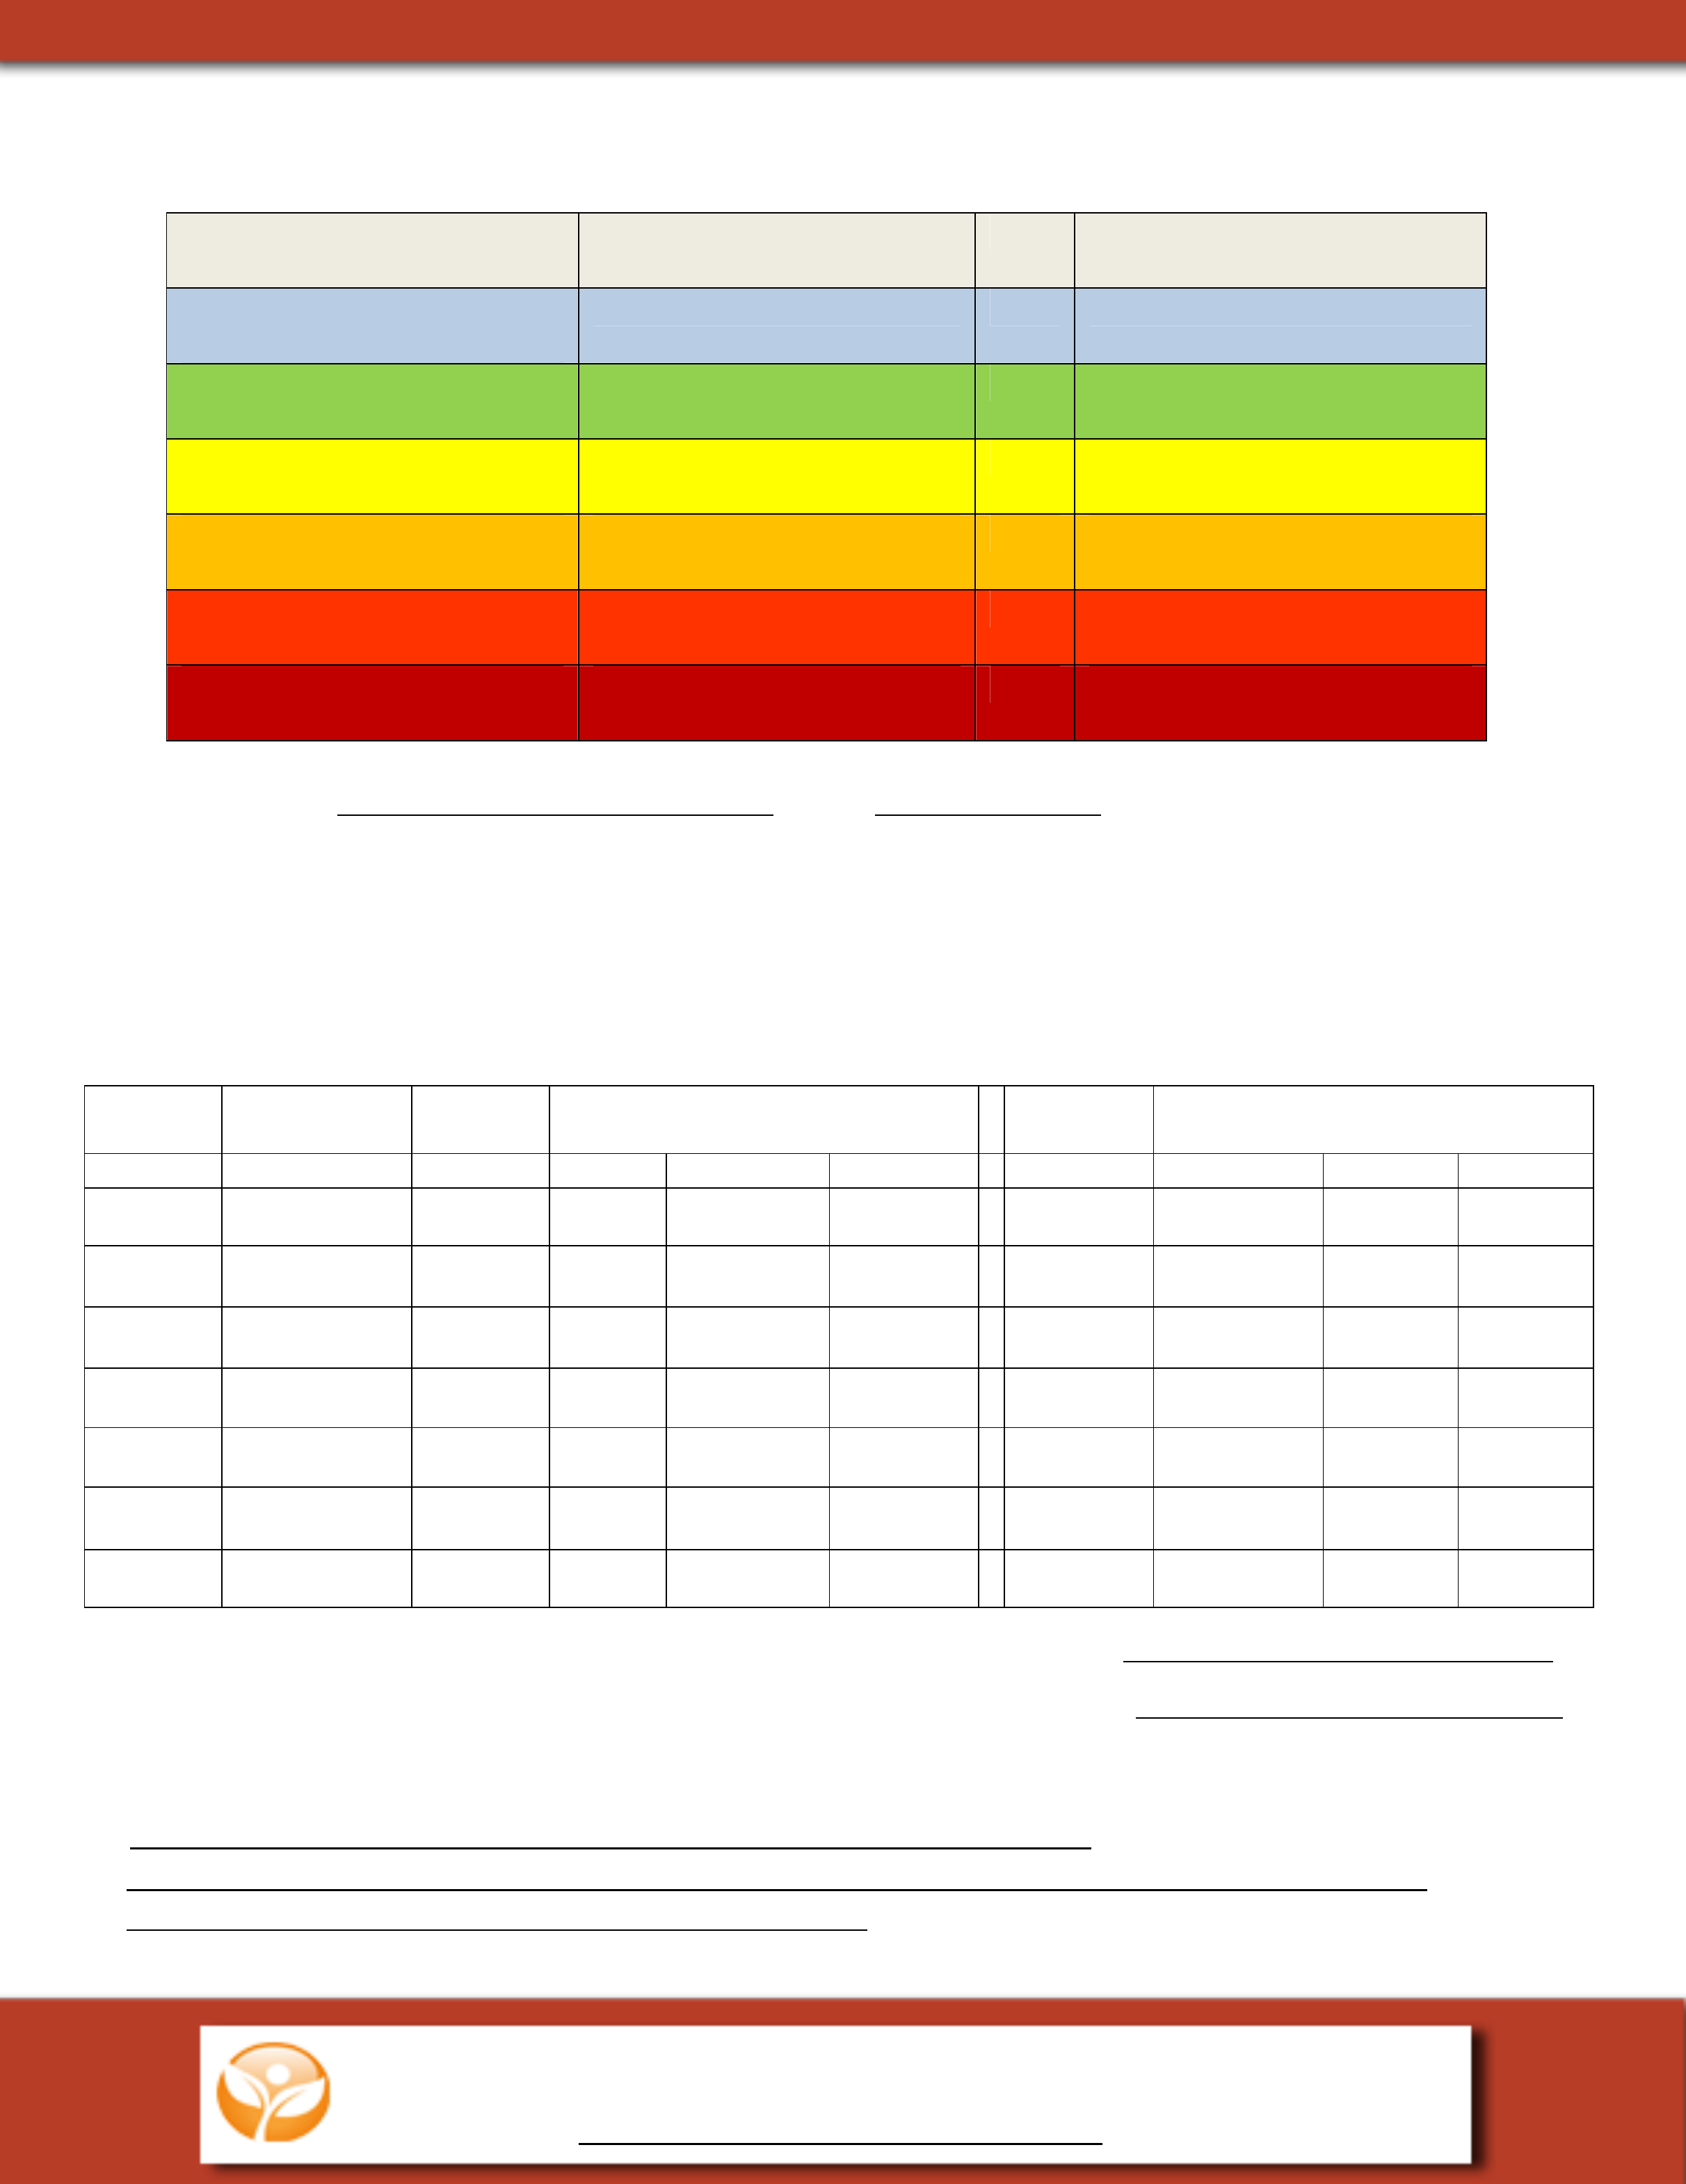 blood pressure monitoring chart free download